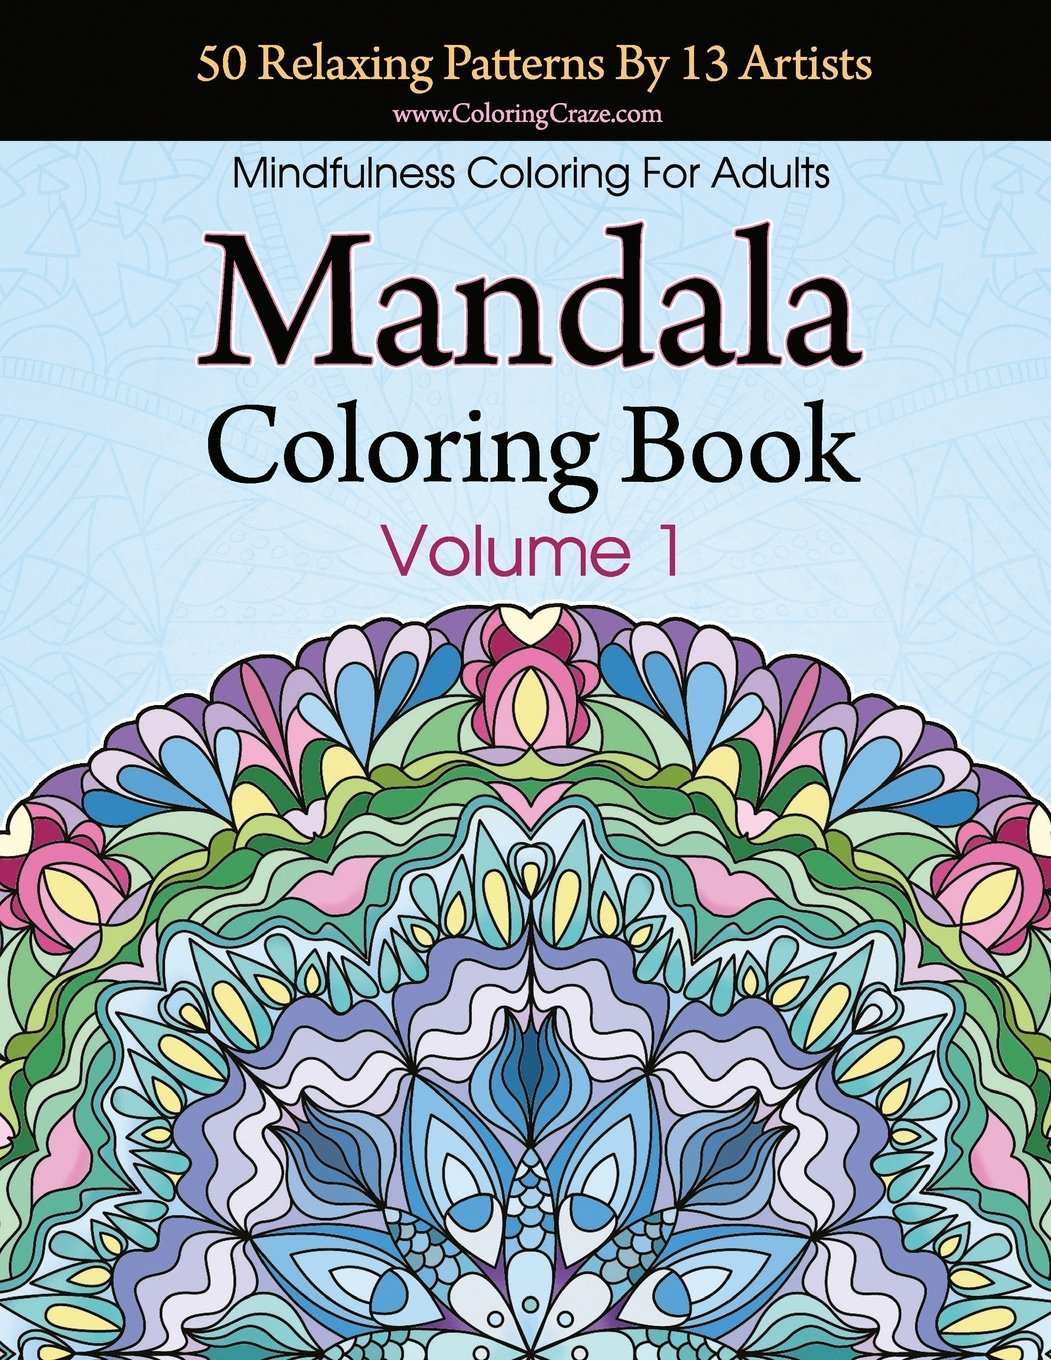 Amazon Mandala Coloring Book 50 Relaxing Patterns By 13 Artists Mindfulness For Adults Volume 1 ColoringCraze Adult Books